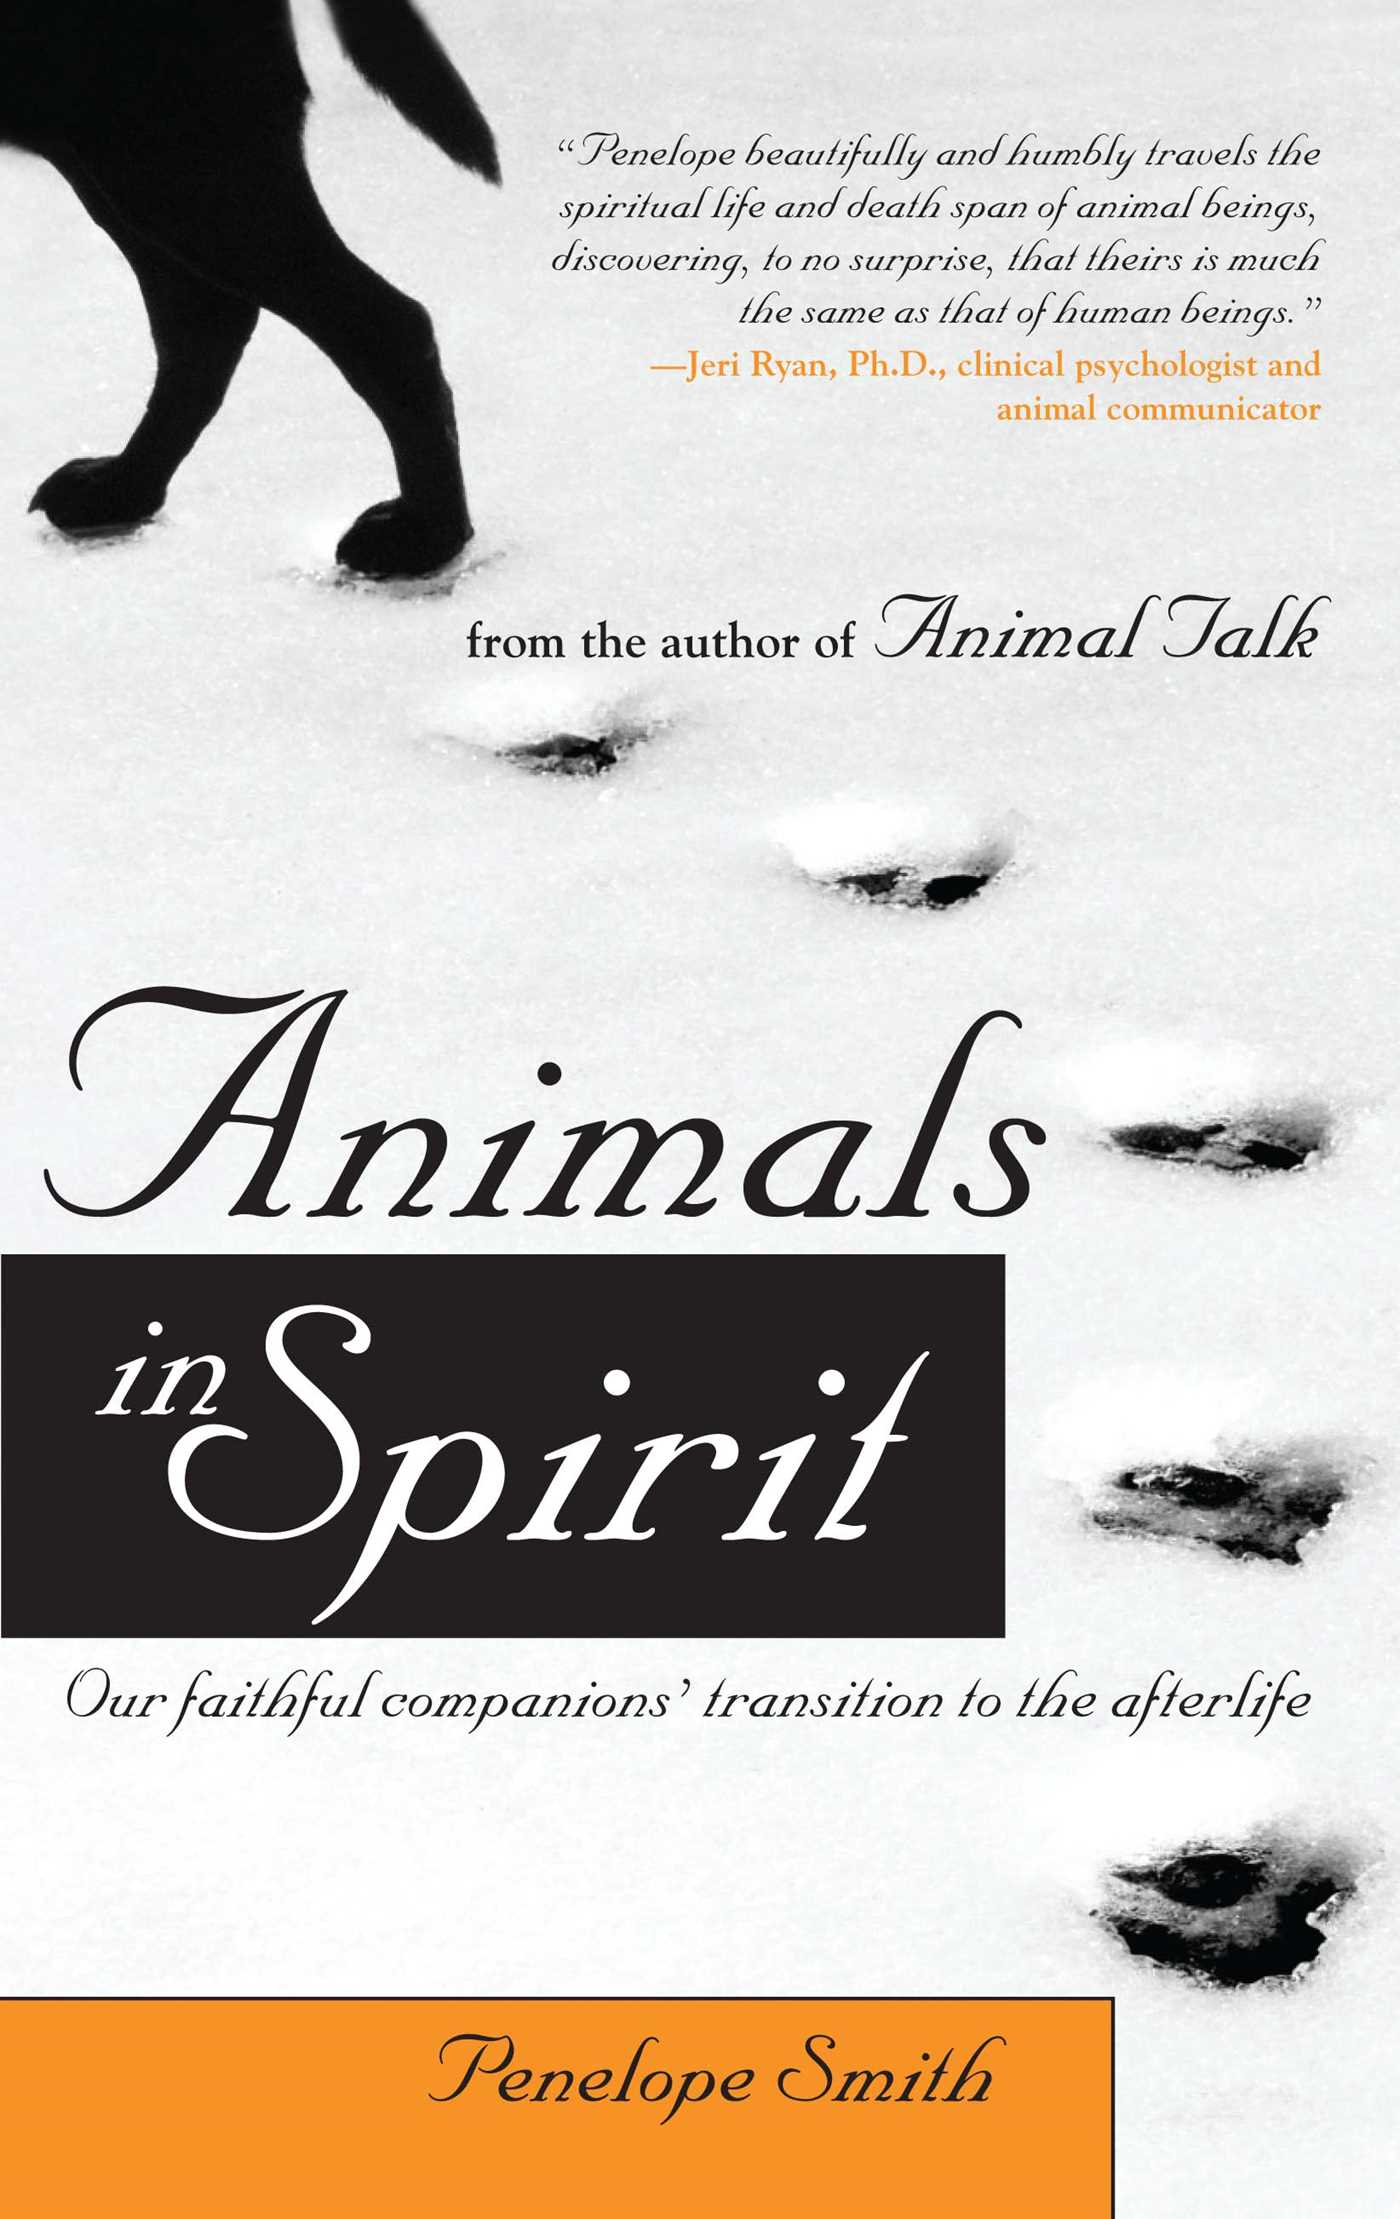 Animals-in-spirit-9781582701776_hr